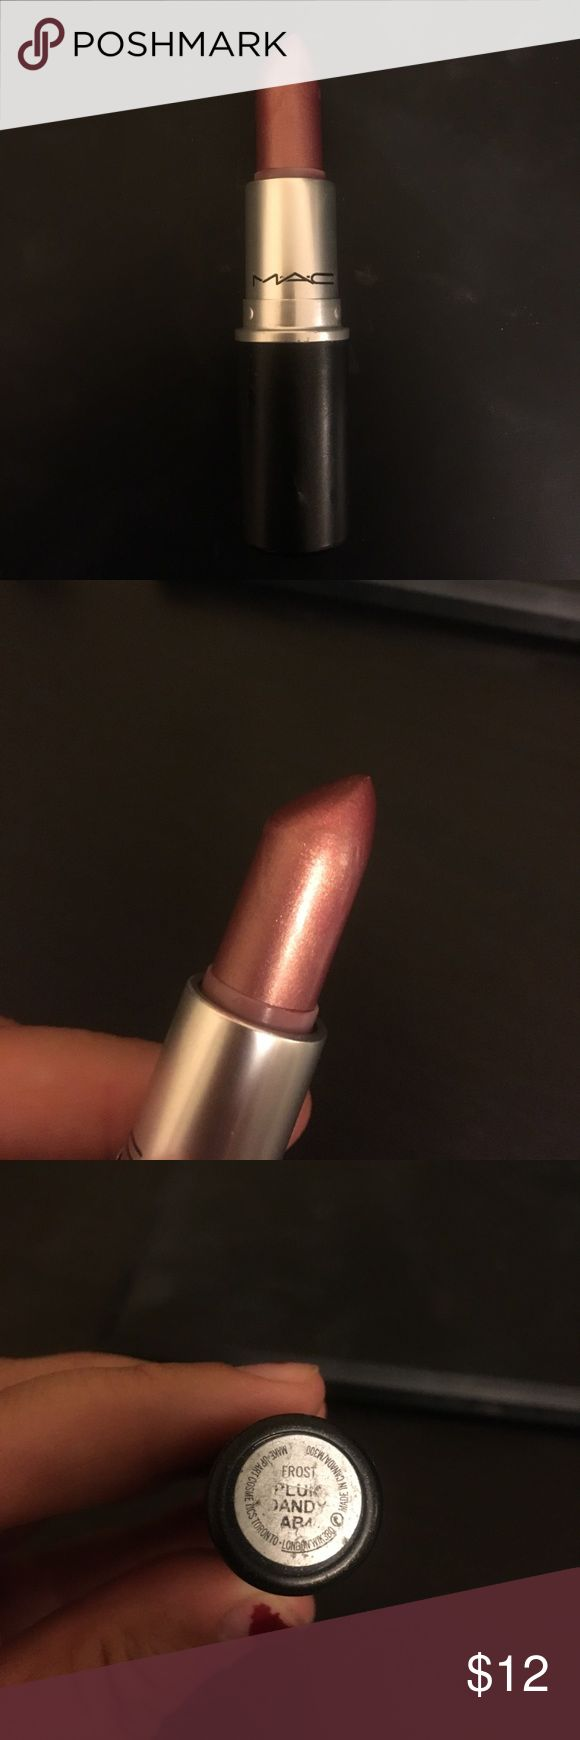 MAC Plum Dandy Lipstick MAC Plum Dandy Frost Lipstick. Beautiful frost light-Plum color with golden shimmer. Used once. Sanitized. MAC Cosmetics Makeup Lipstick